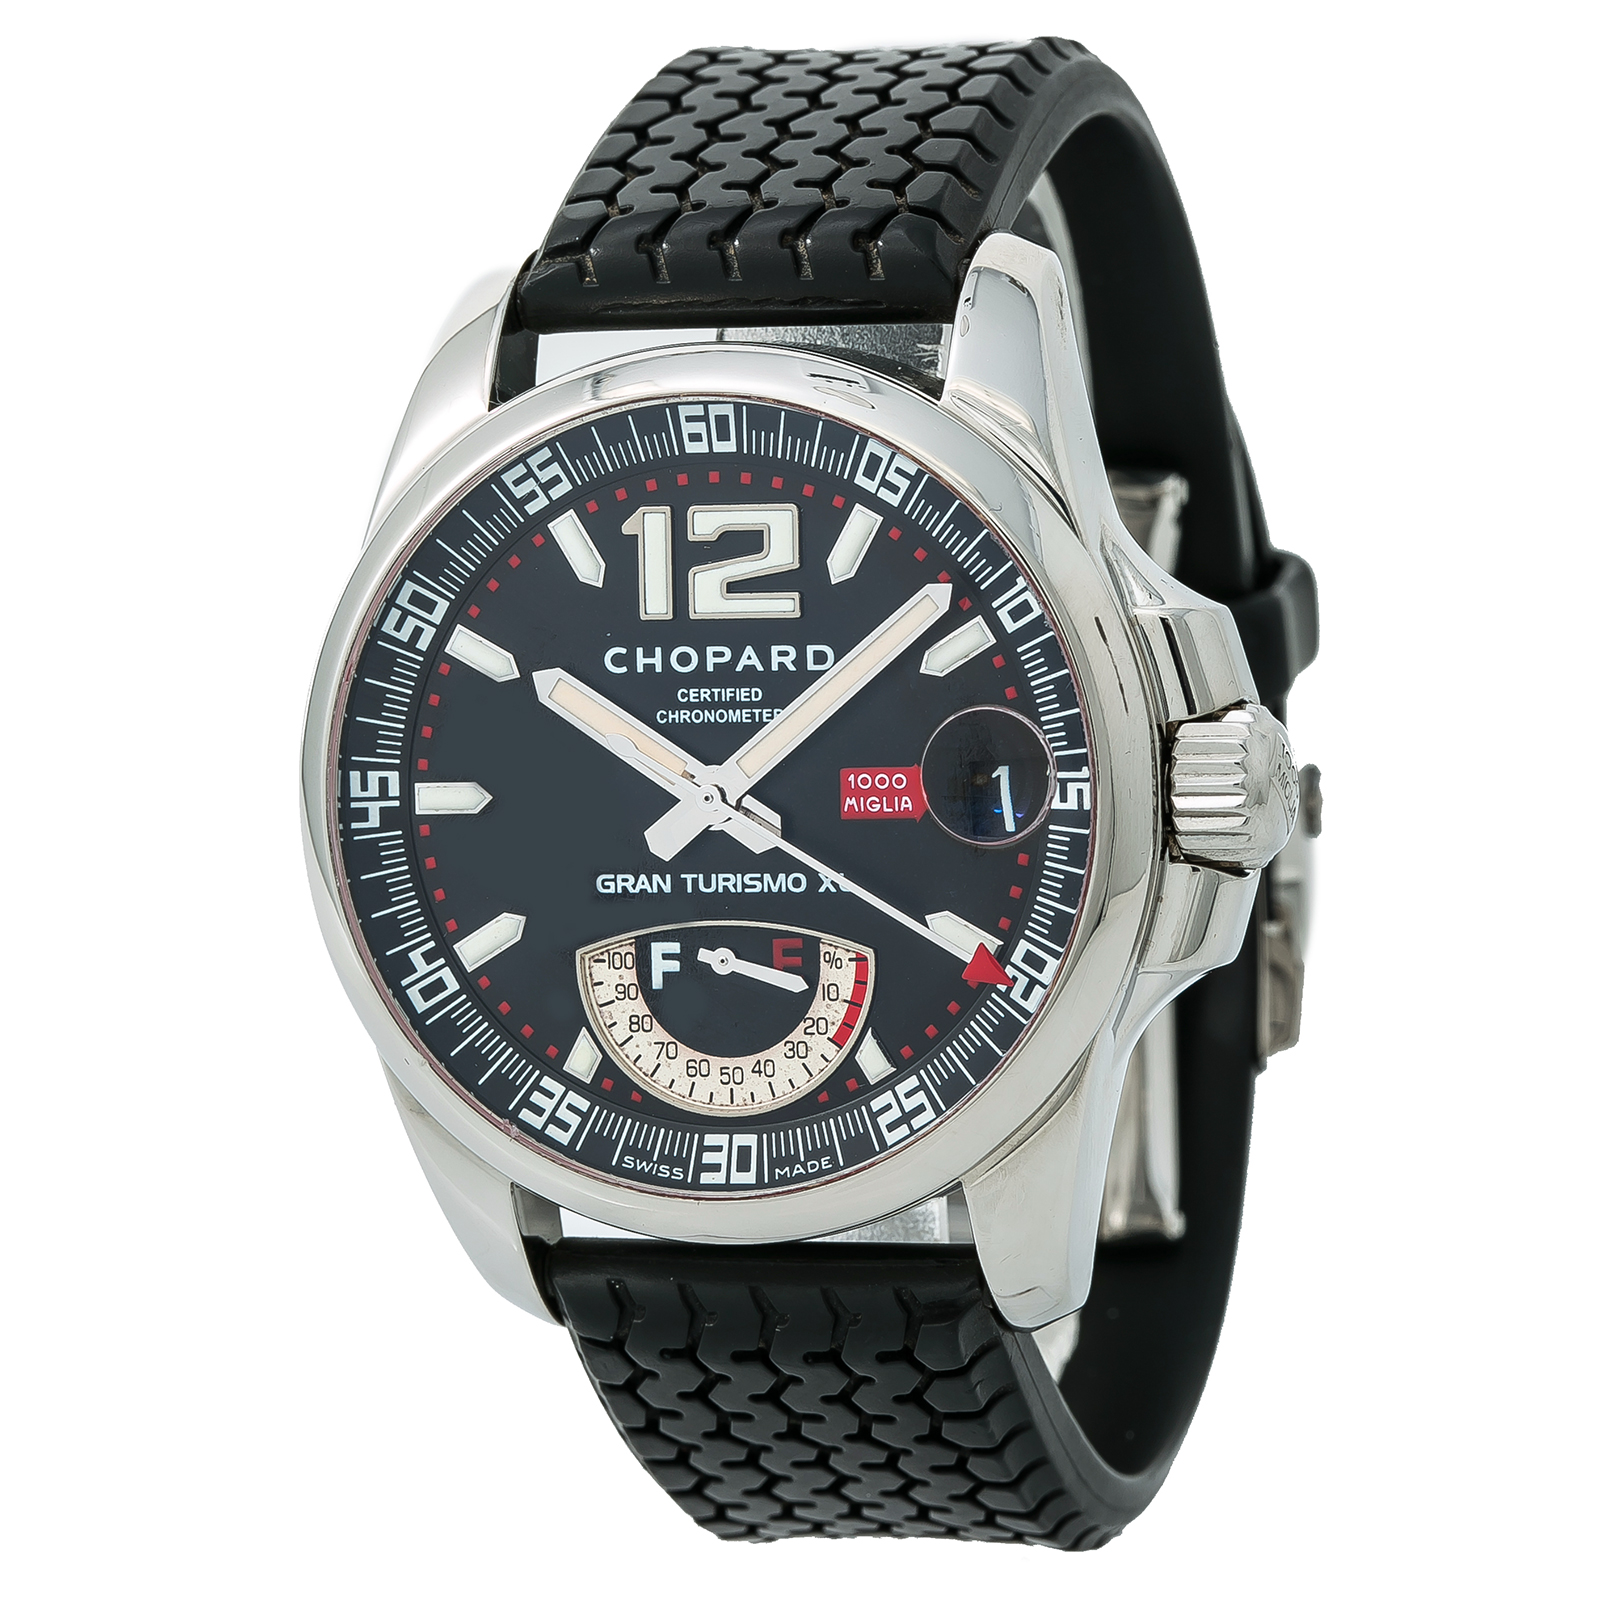 aa7724e14ae Details about Chopard Mille Miglia GT XL 8997 Power Reserve Automatic Watch  Black Dial 44mm